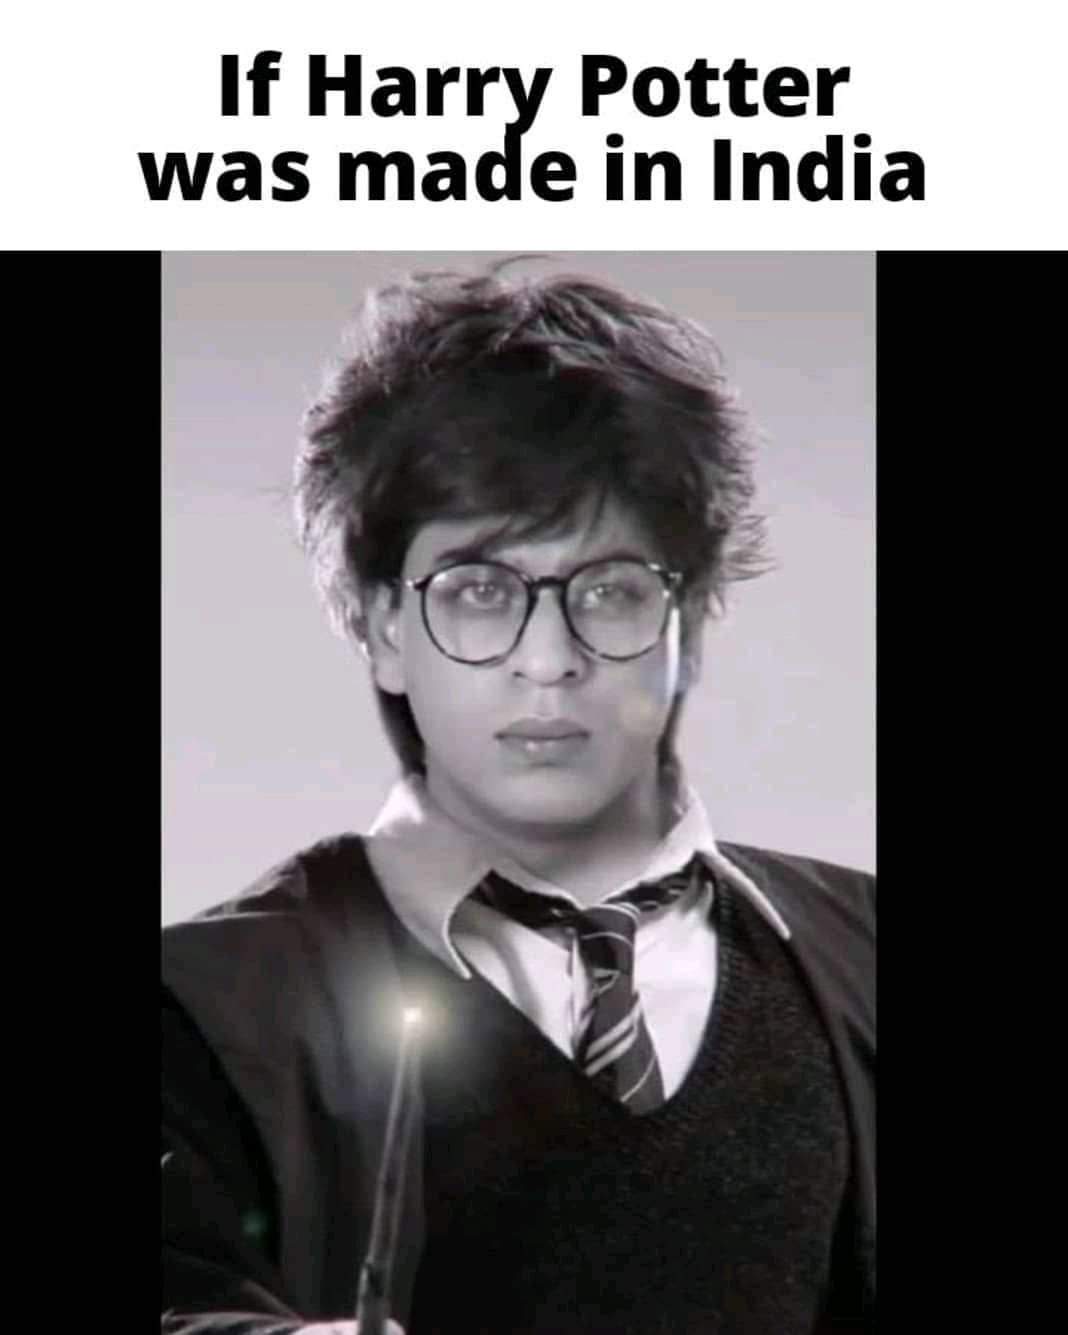 Indian Harry Potter Be Like Tag A Harry Potter Fan Credit Scoopwoop Follow Them For Mo Best Funny Pictures Funny Gif Memes